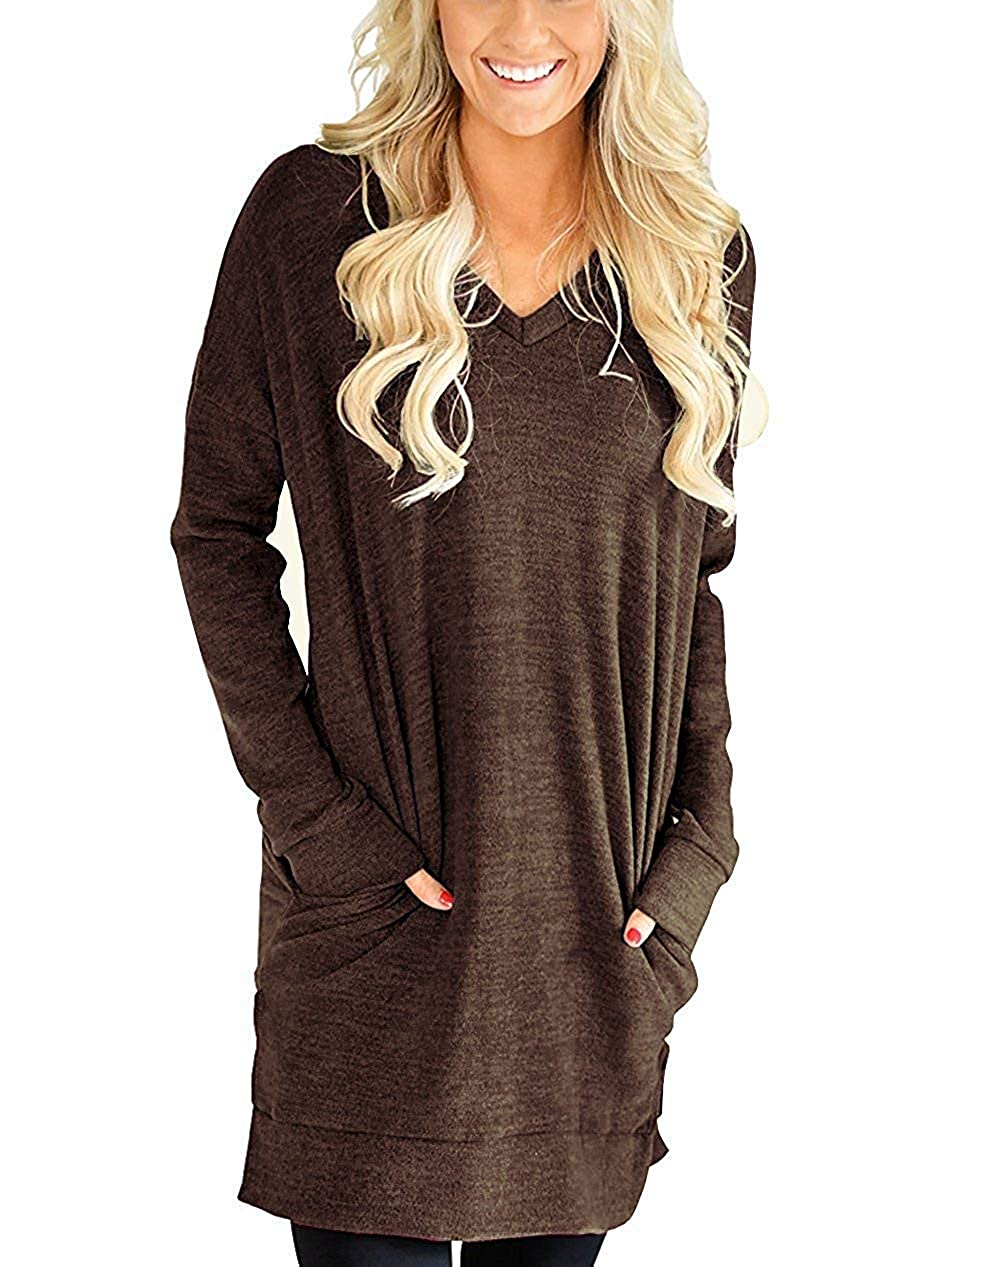 Brown lili's story Women Long Sleeves Shirt VNeck Tunic Tops for Legging Pocket Solid color Casual Blouse